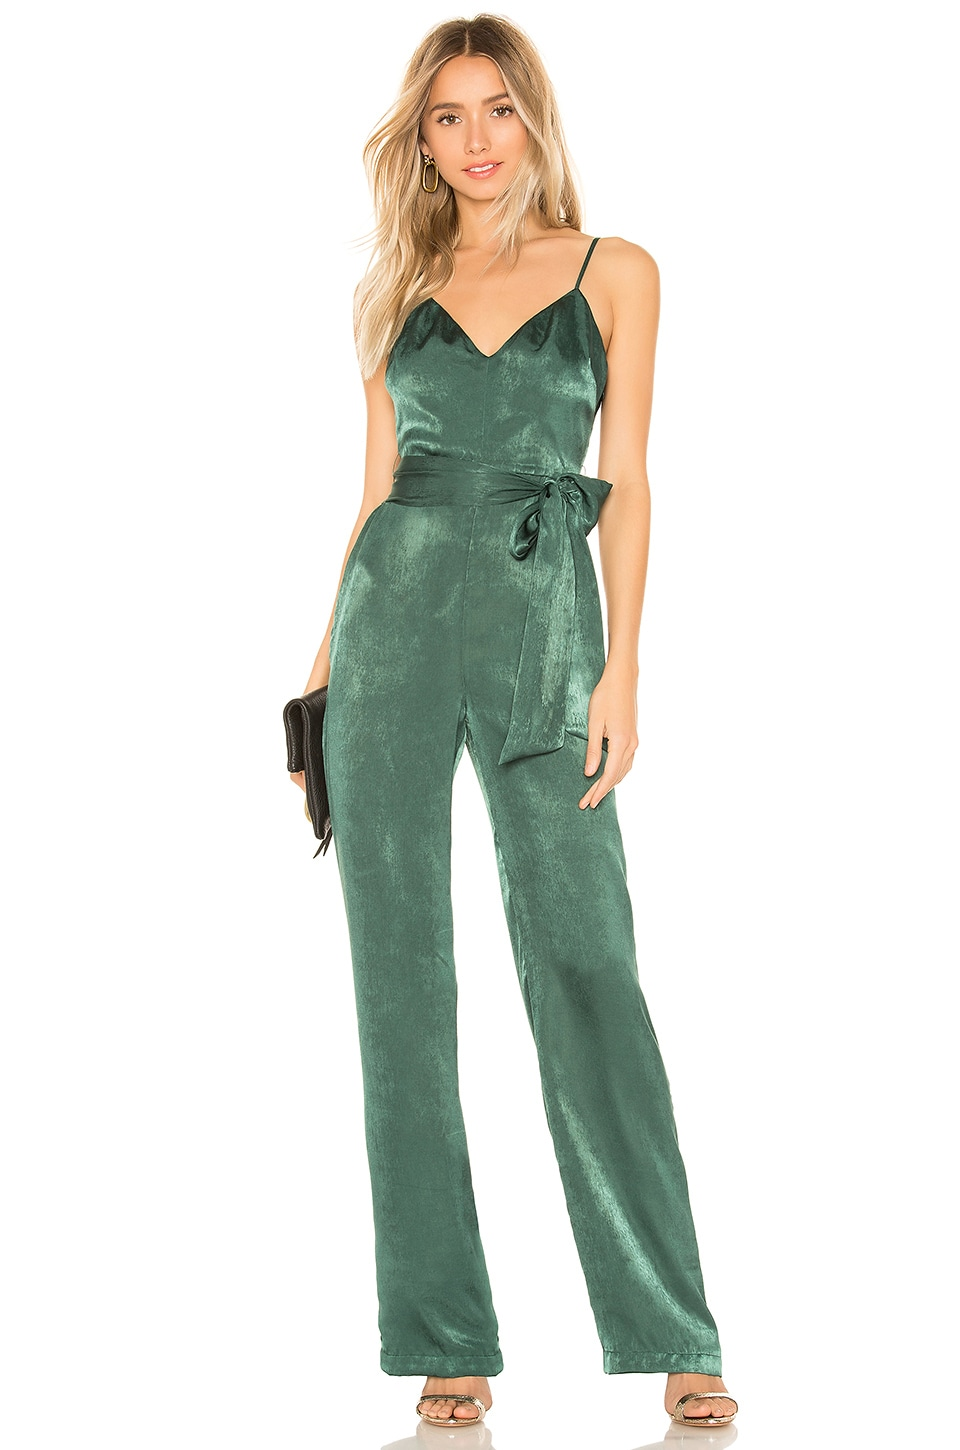 Lovers + Friends Penelope Jumpsuit in Hunter Green